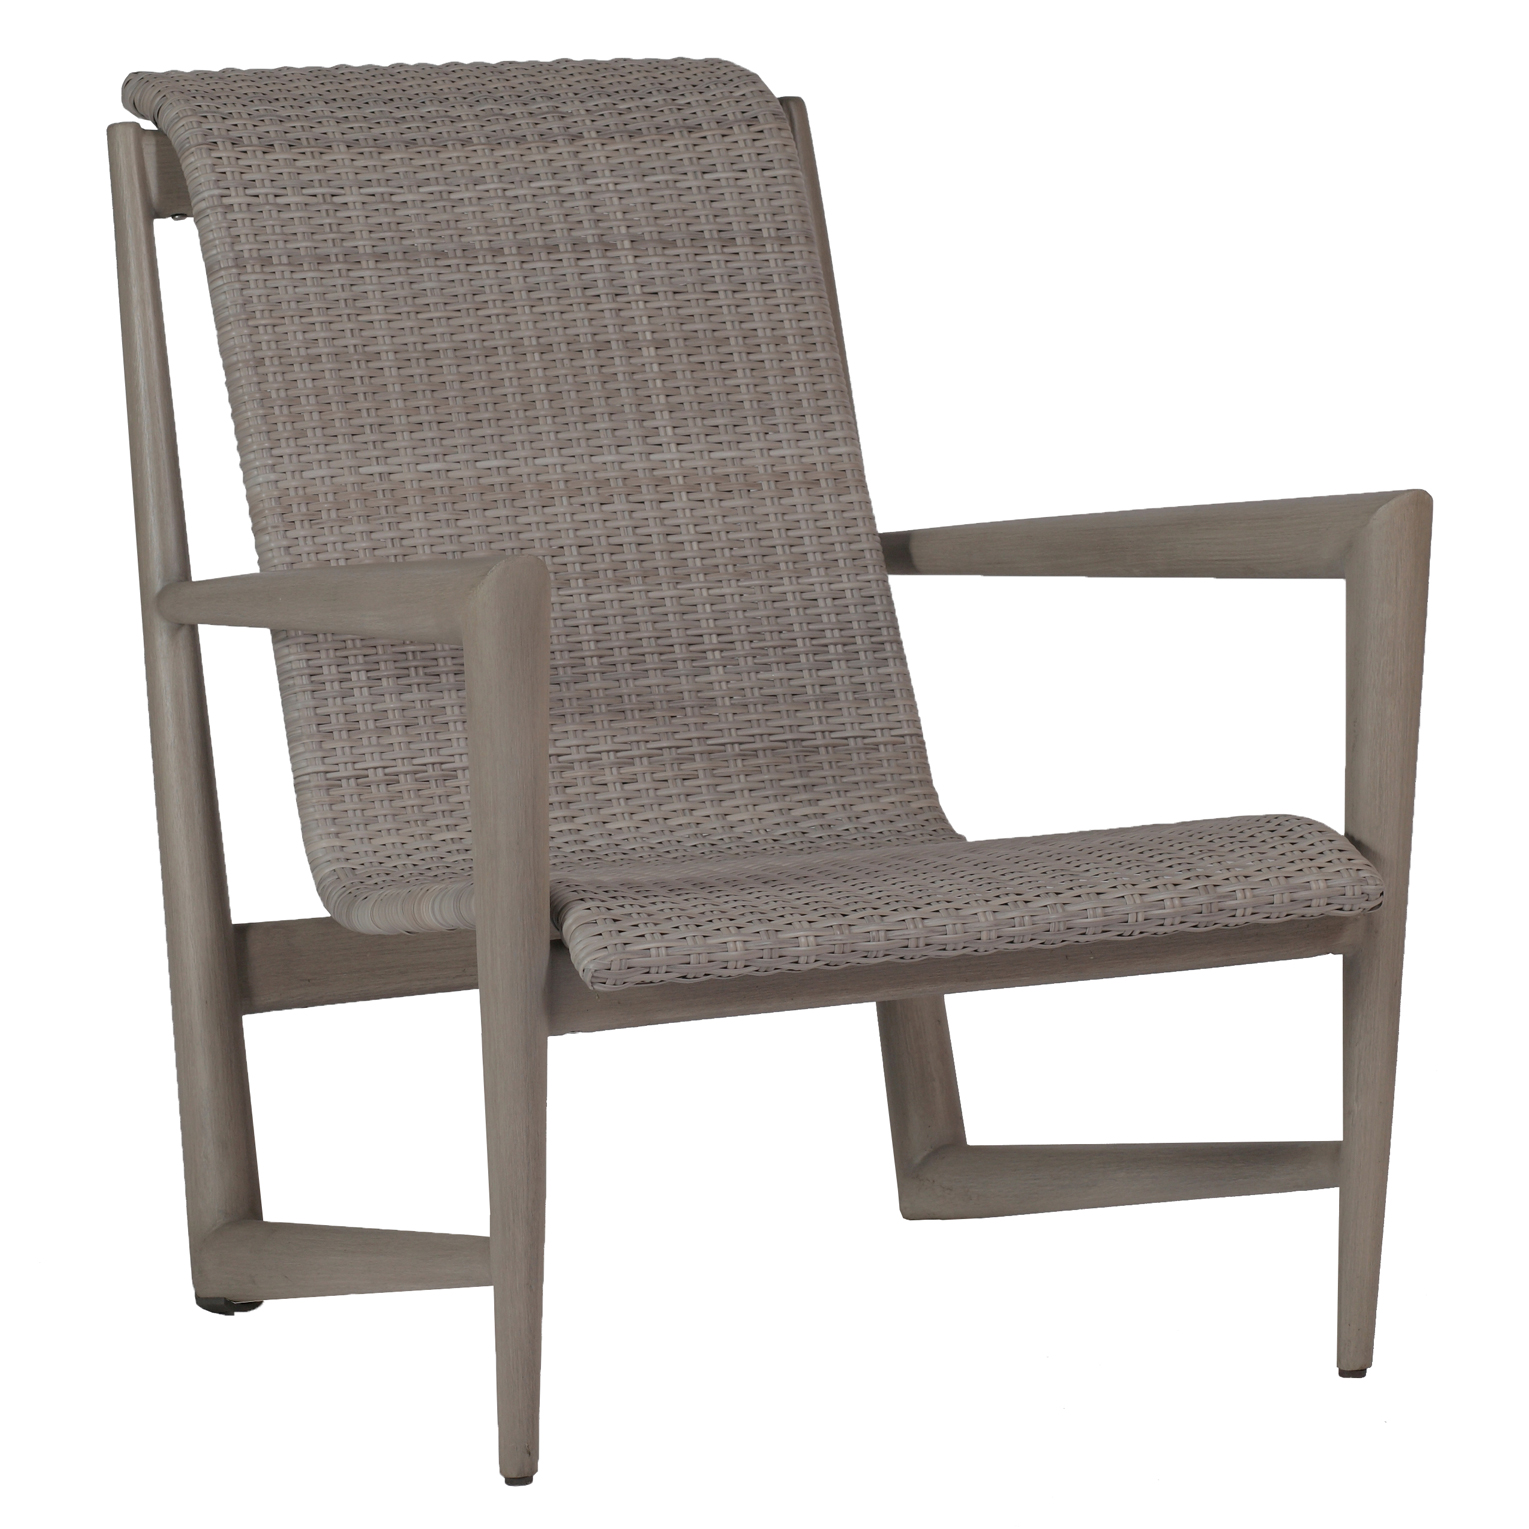 Summer Classics Wind Oyster Grey Wicker Outdoor Lounge Chair